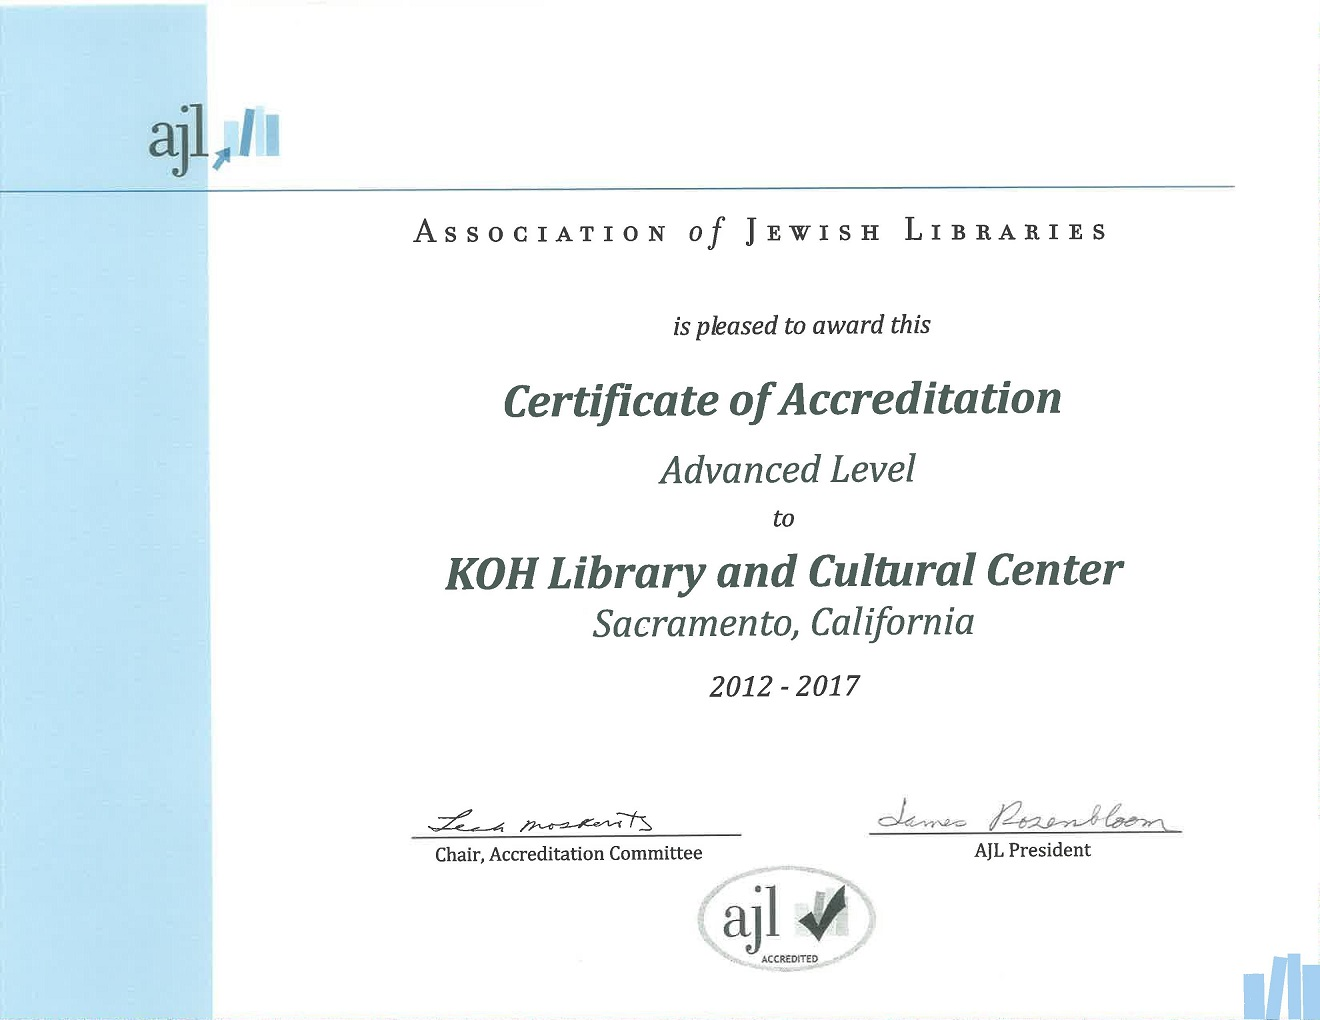 AJL Certificate of Accreditation